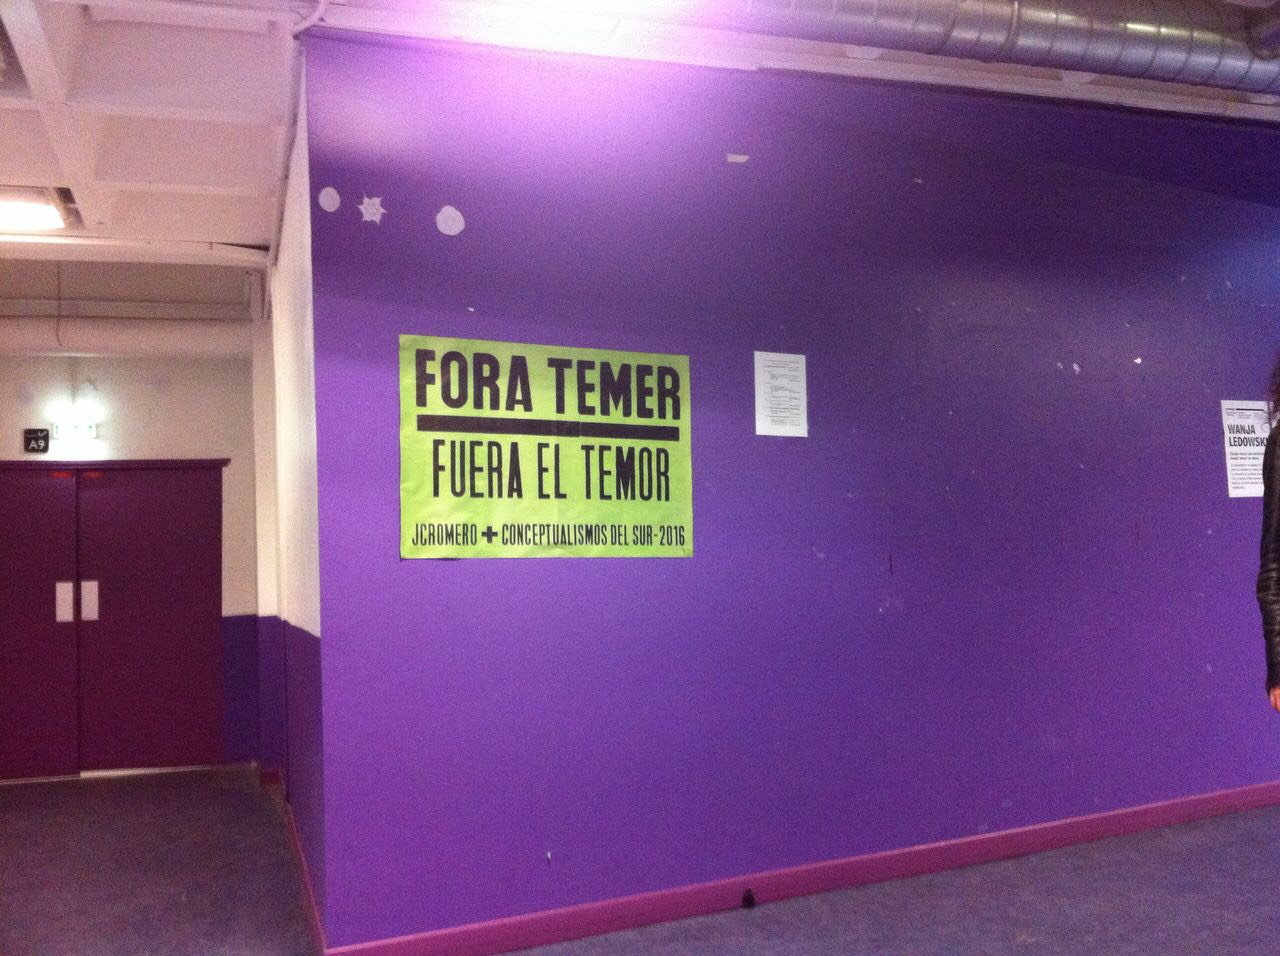 Fora Temer..., Universidad Paris8, Paris, 2017